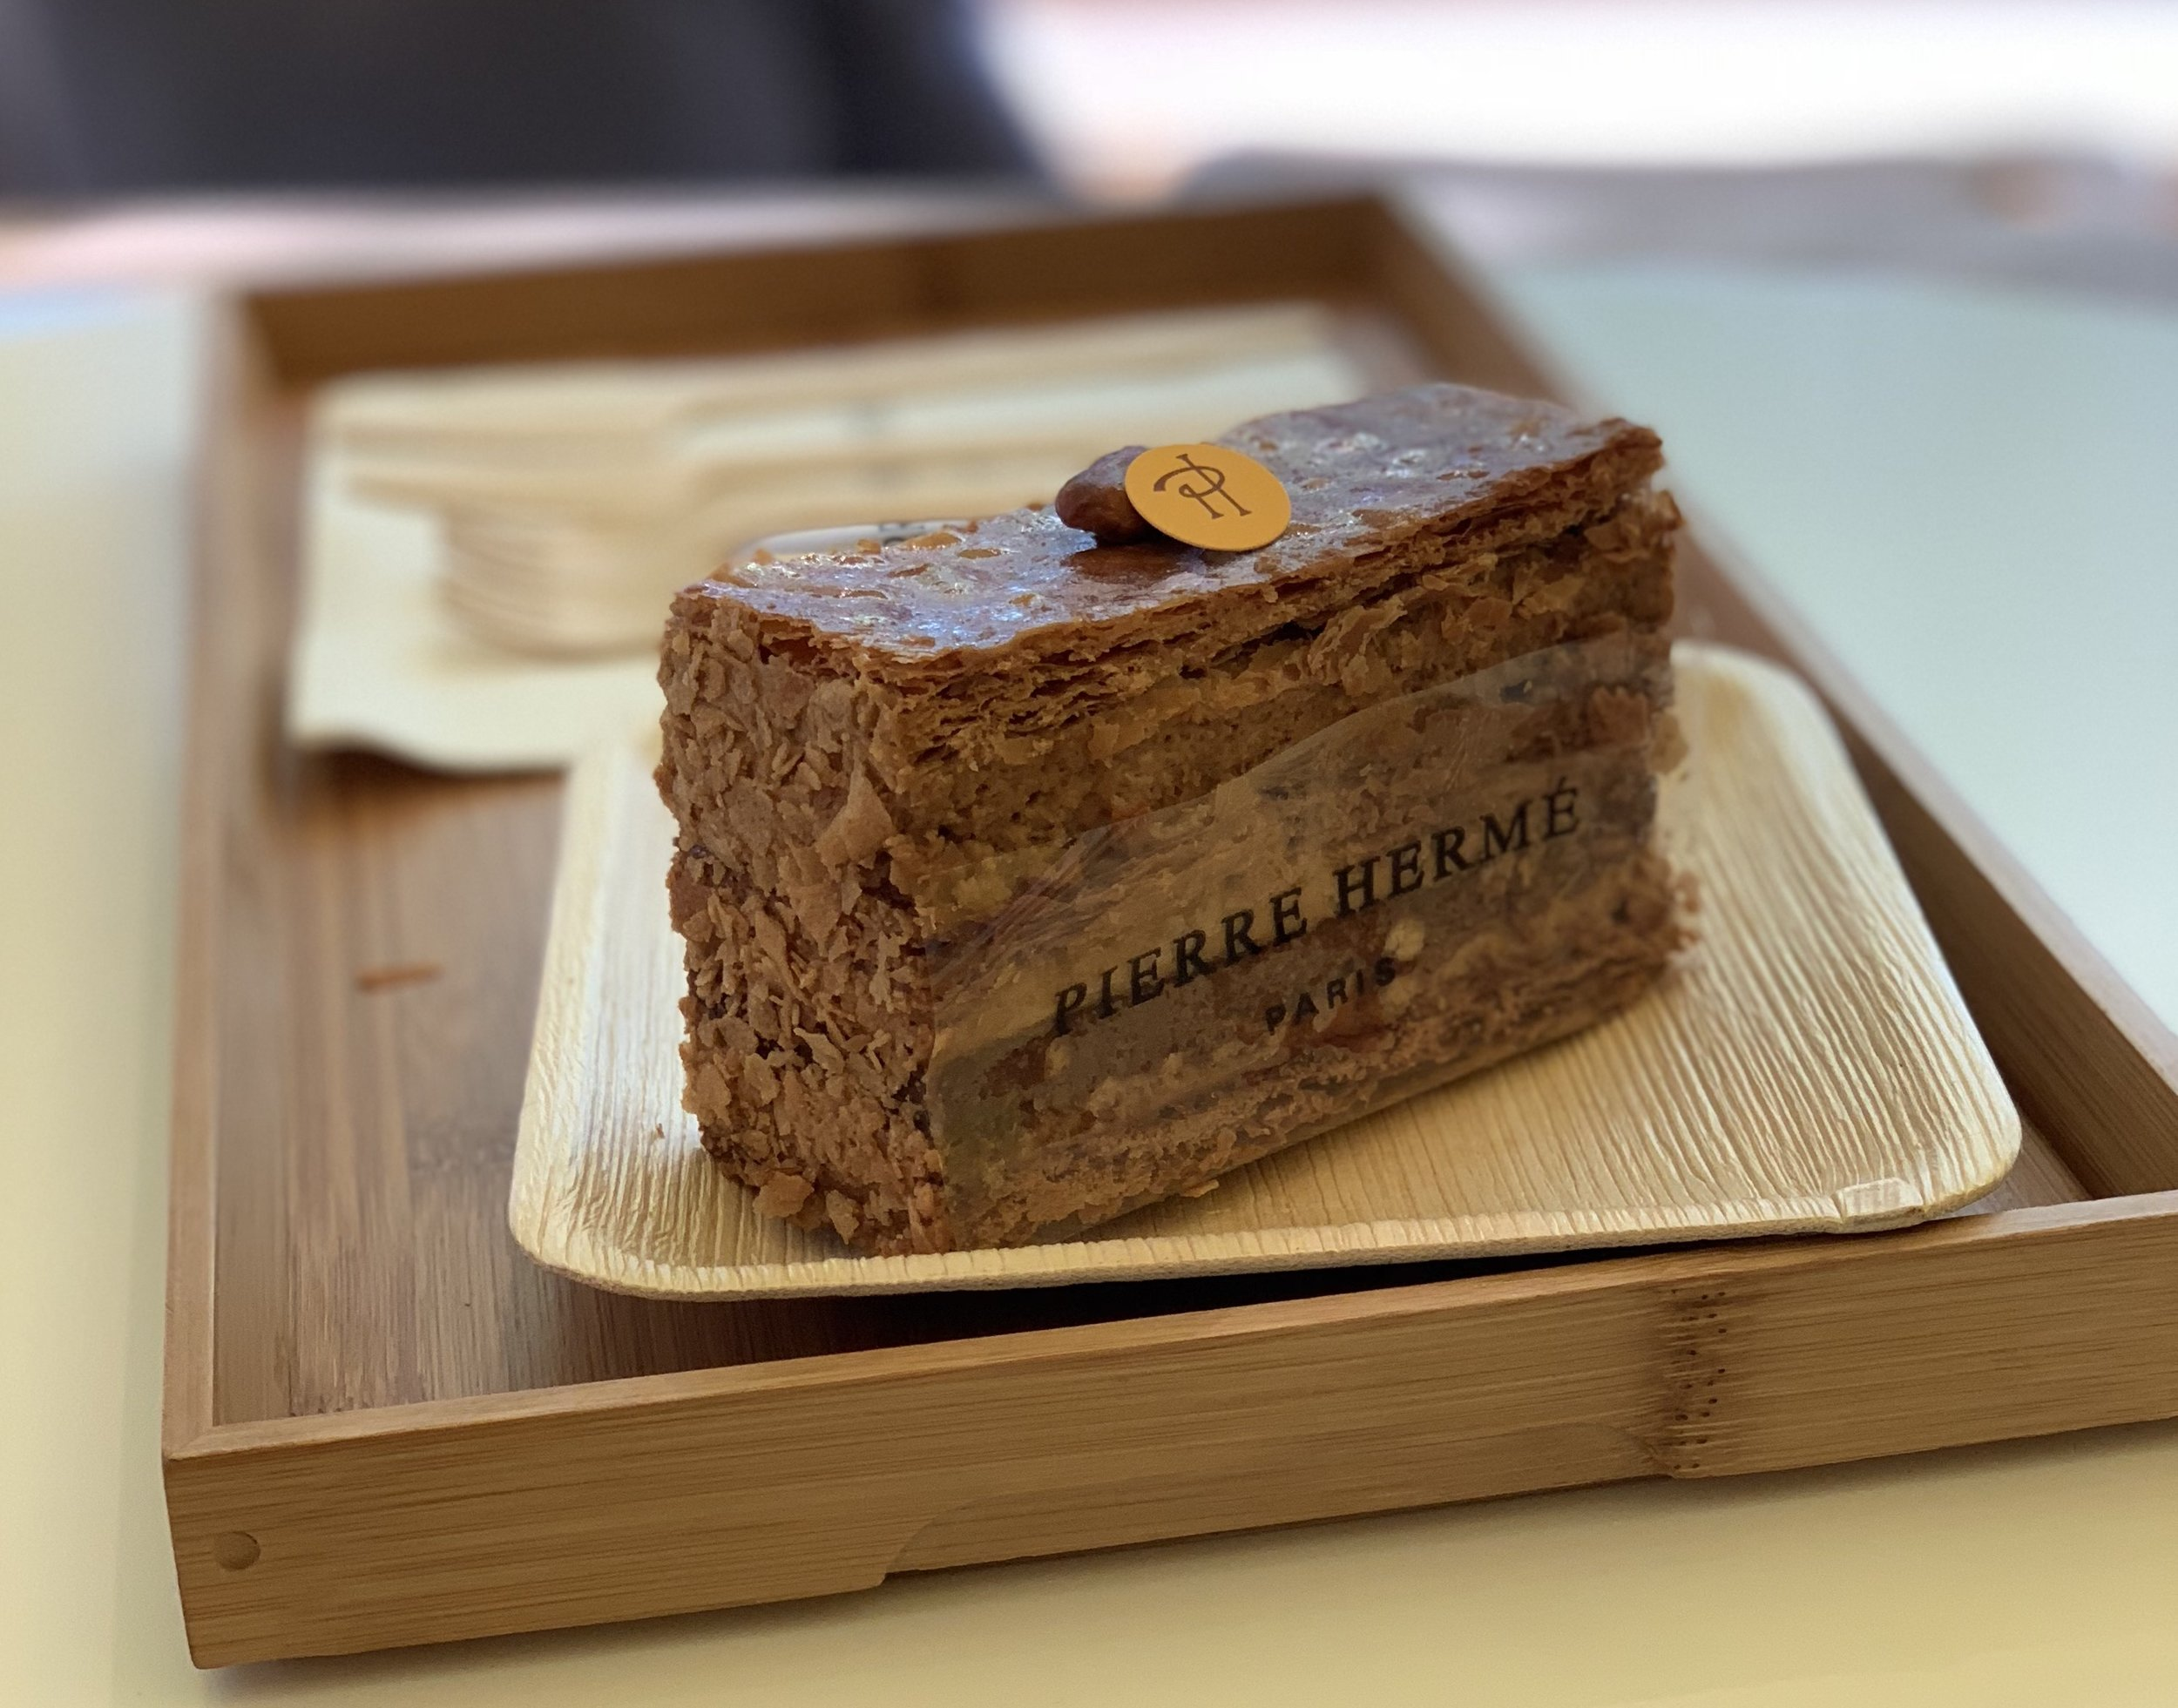 Don't even consider traveling to Paris and skipping out on Pierre Herme's 2,000 layer dessert!